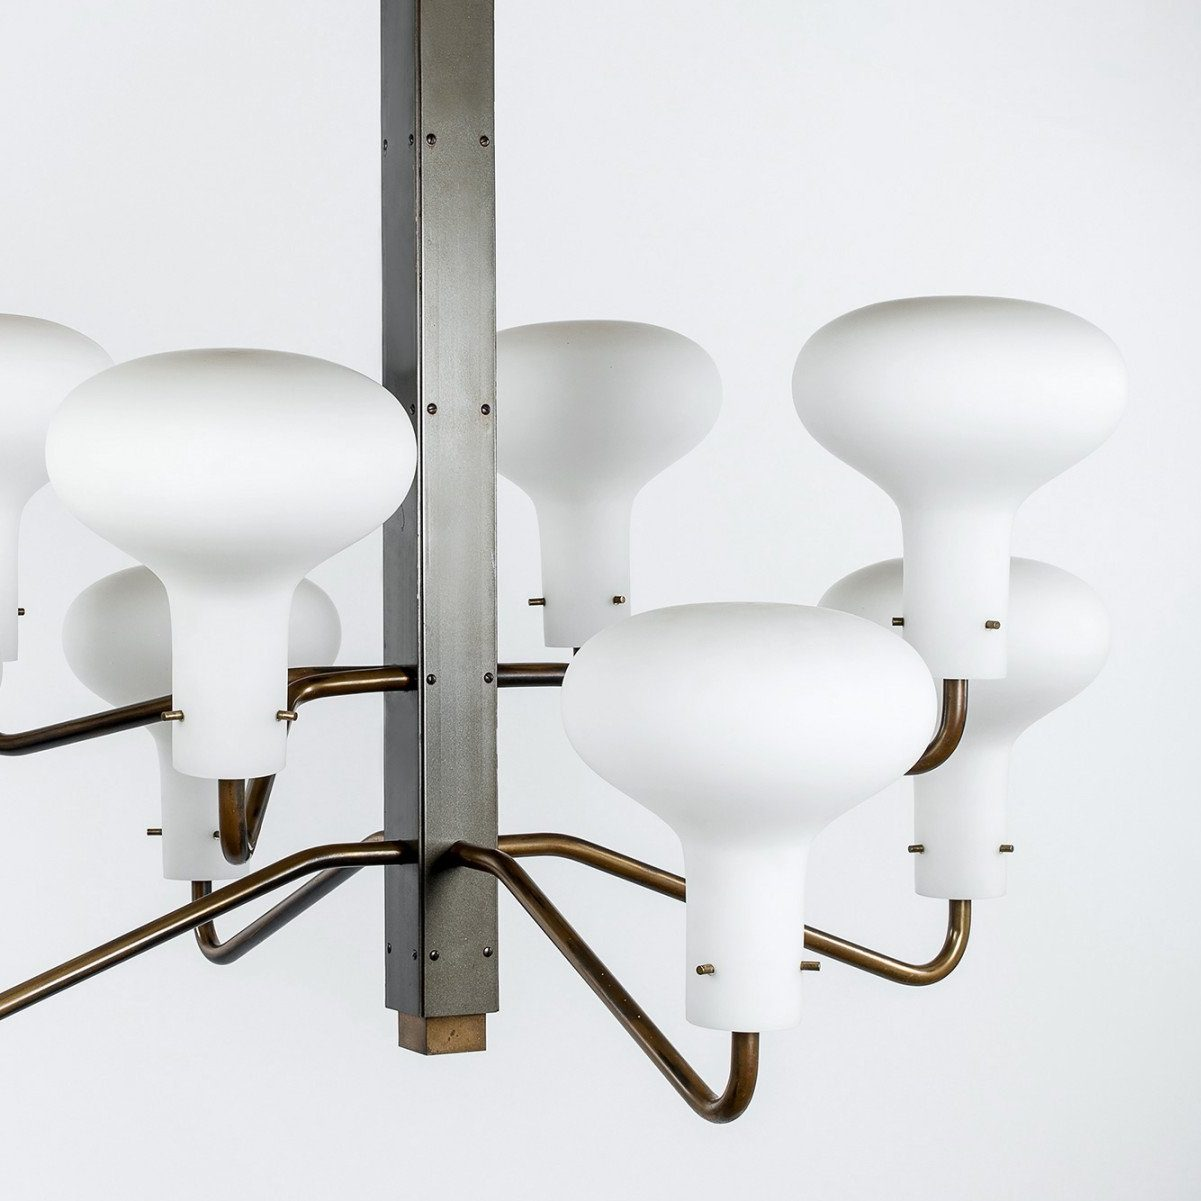 Ignazio Gardella |                                  Eight-arm chandelier